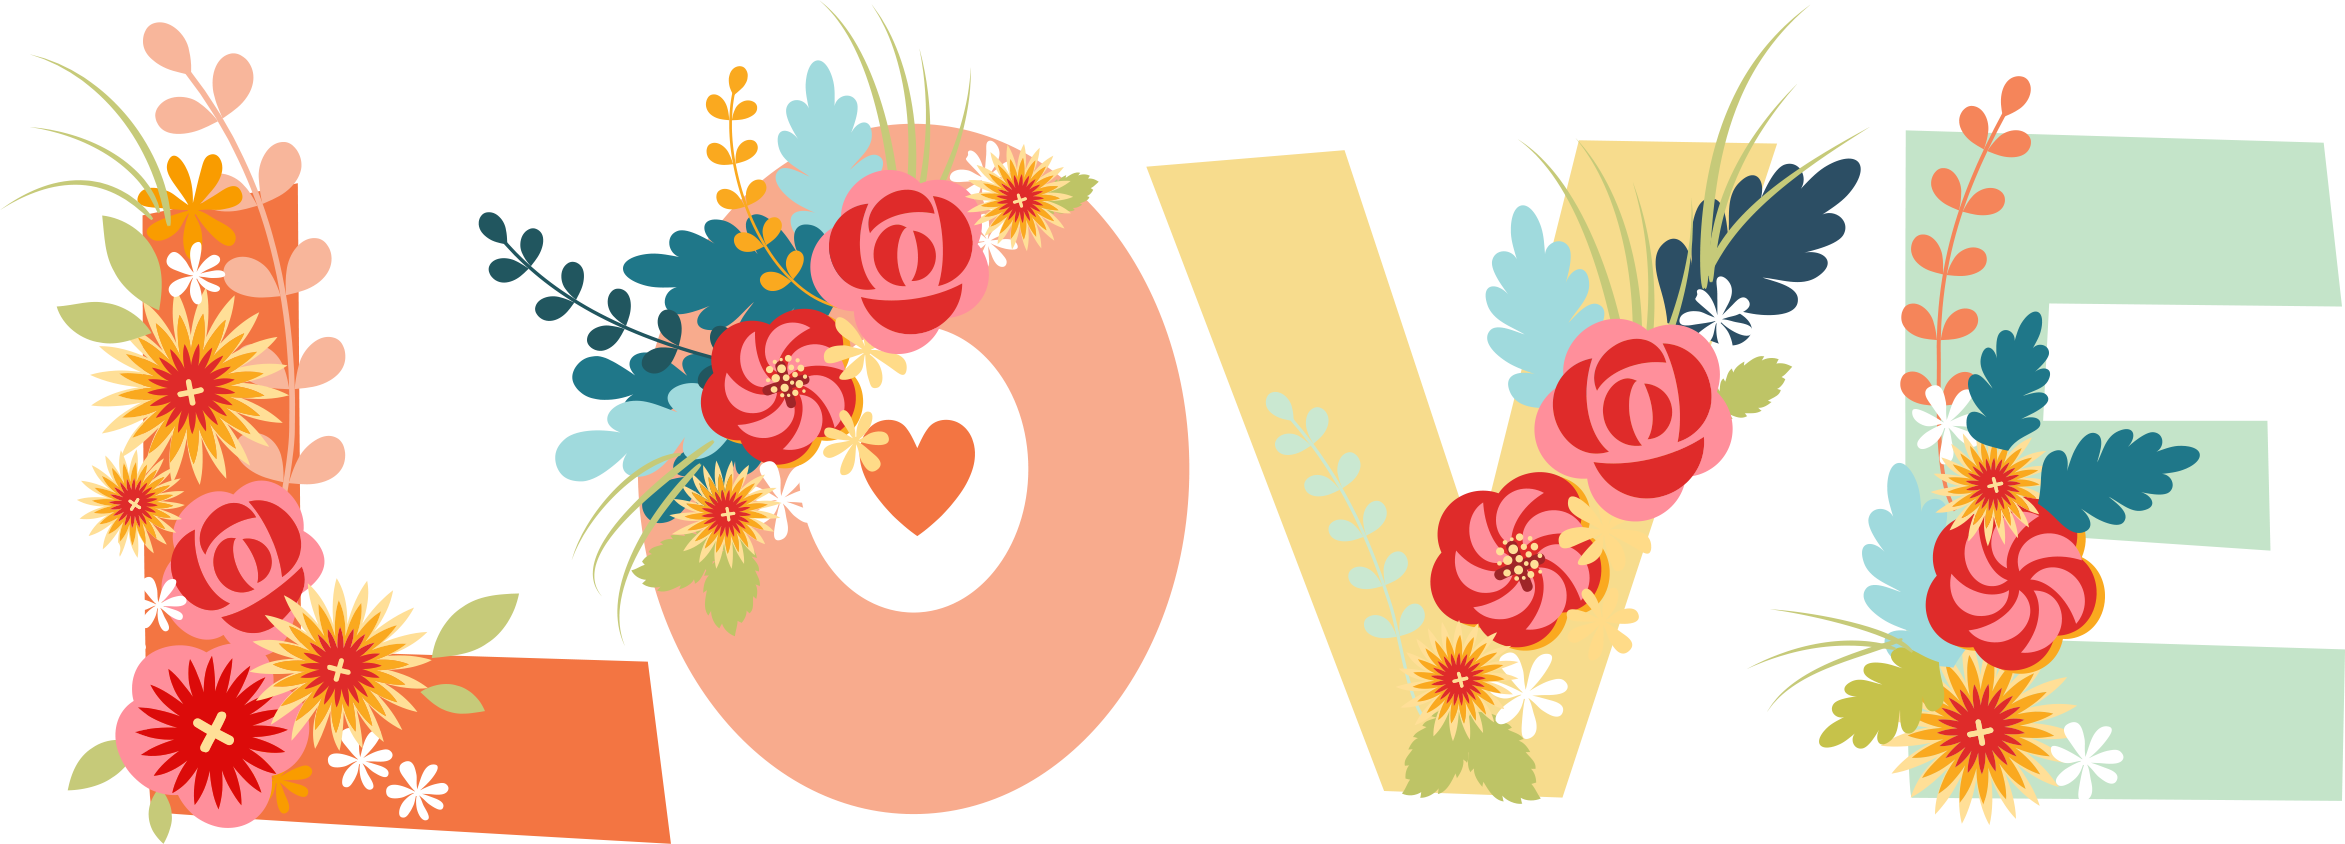 Love Clipart PNG - 124468